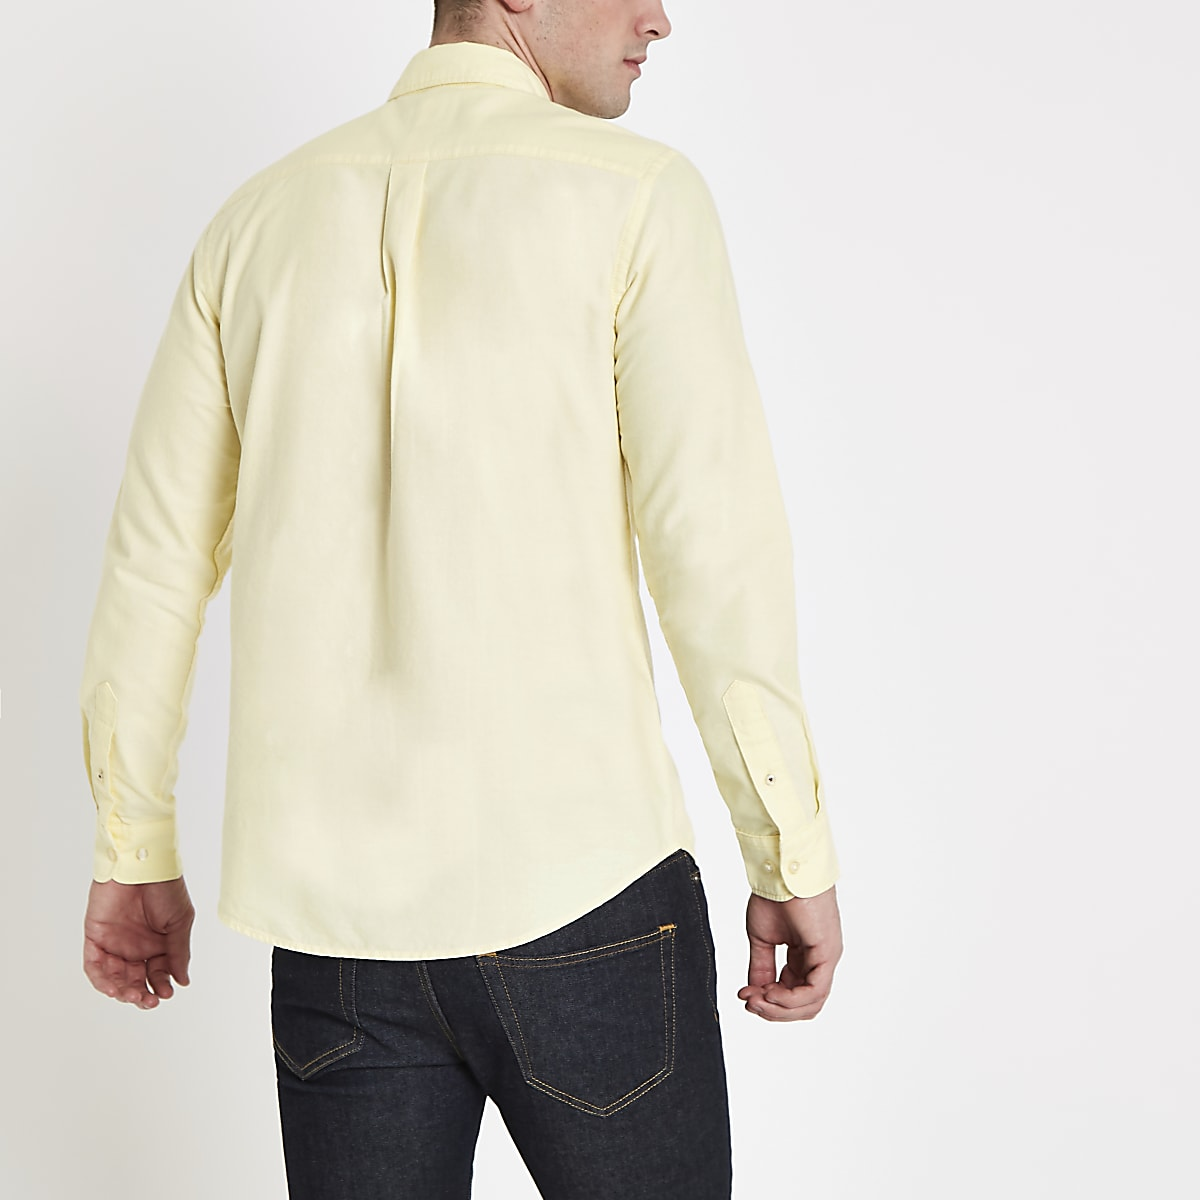 314050213a6 Yellow long sleeve Oxford shirt